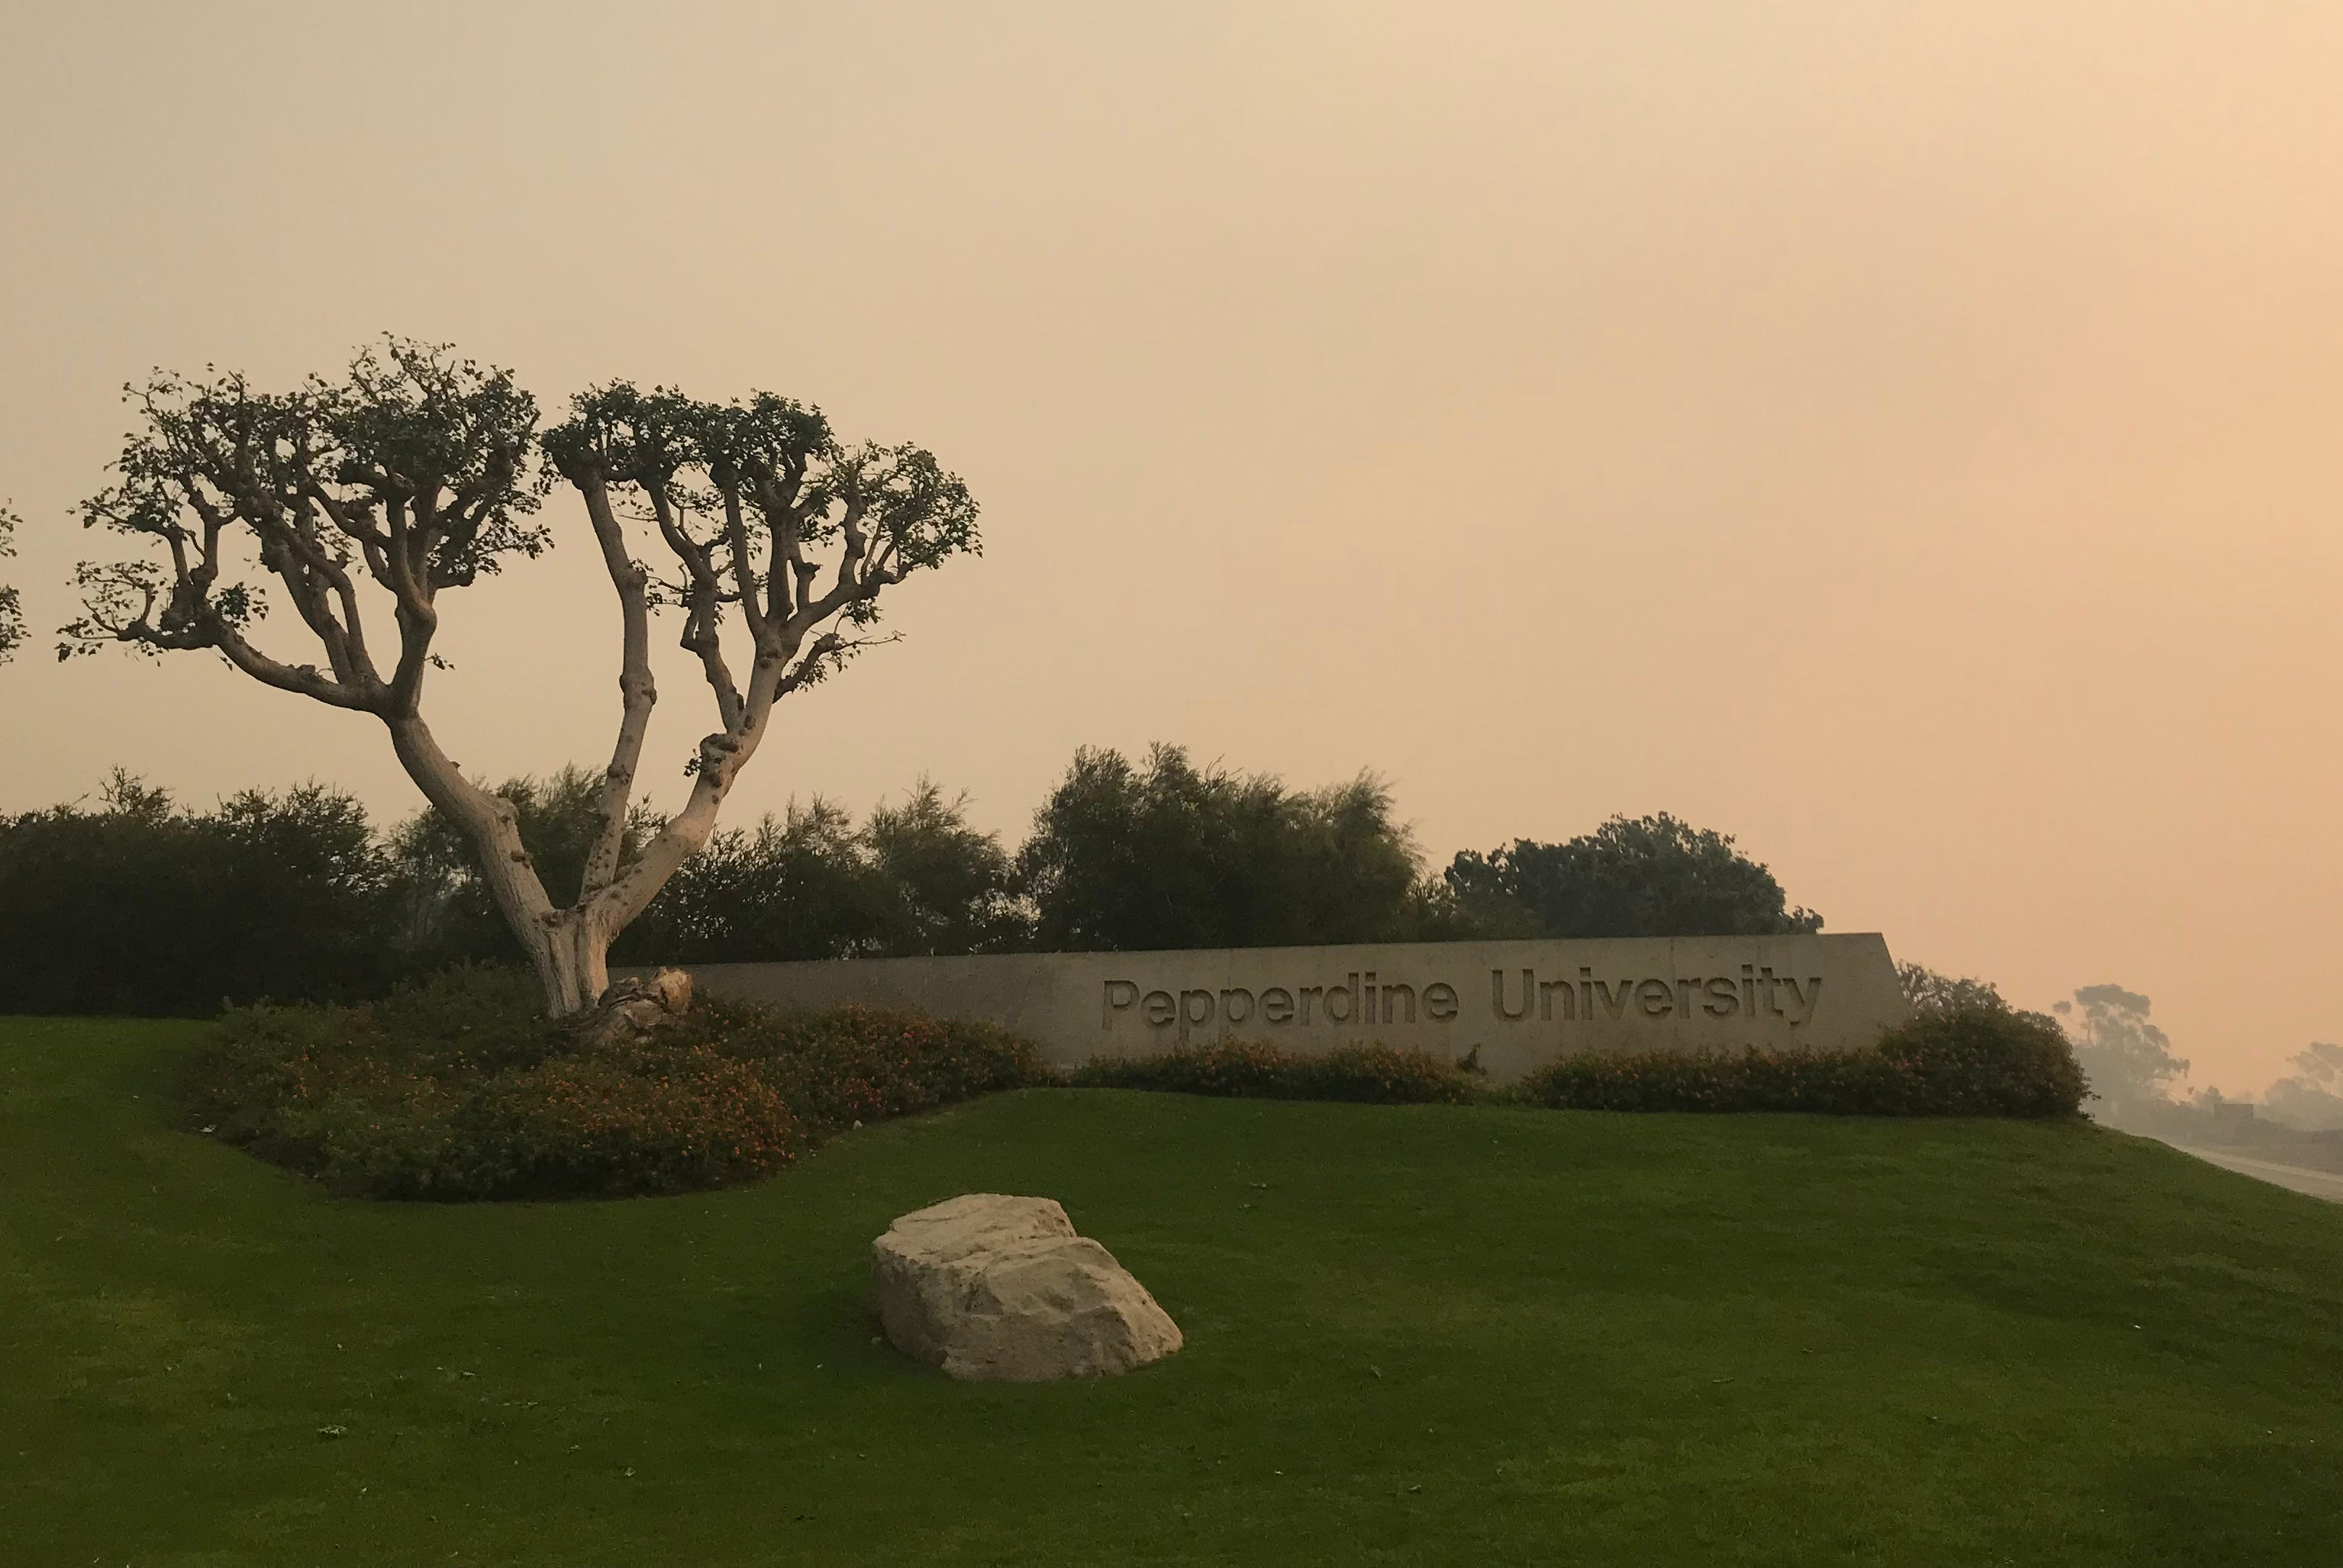 Pepperdine University was surrounded by smoke on Saturday, Nov. 10, 2018, as crews continued to fight the Woolsey Fire.